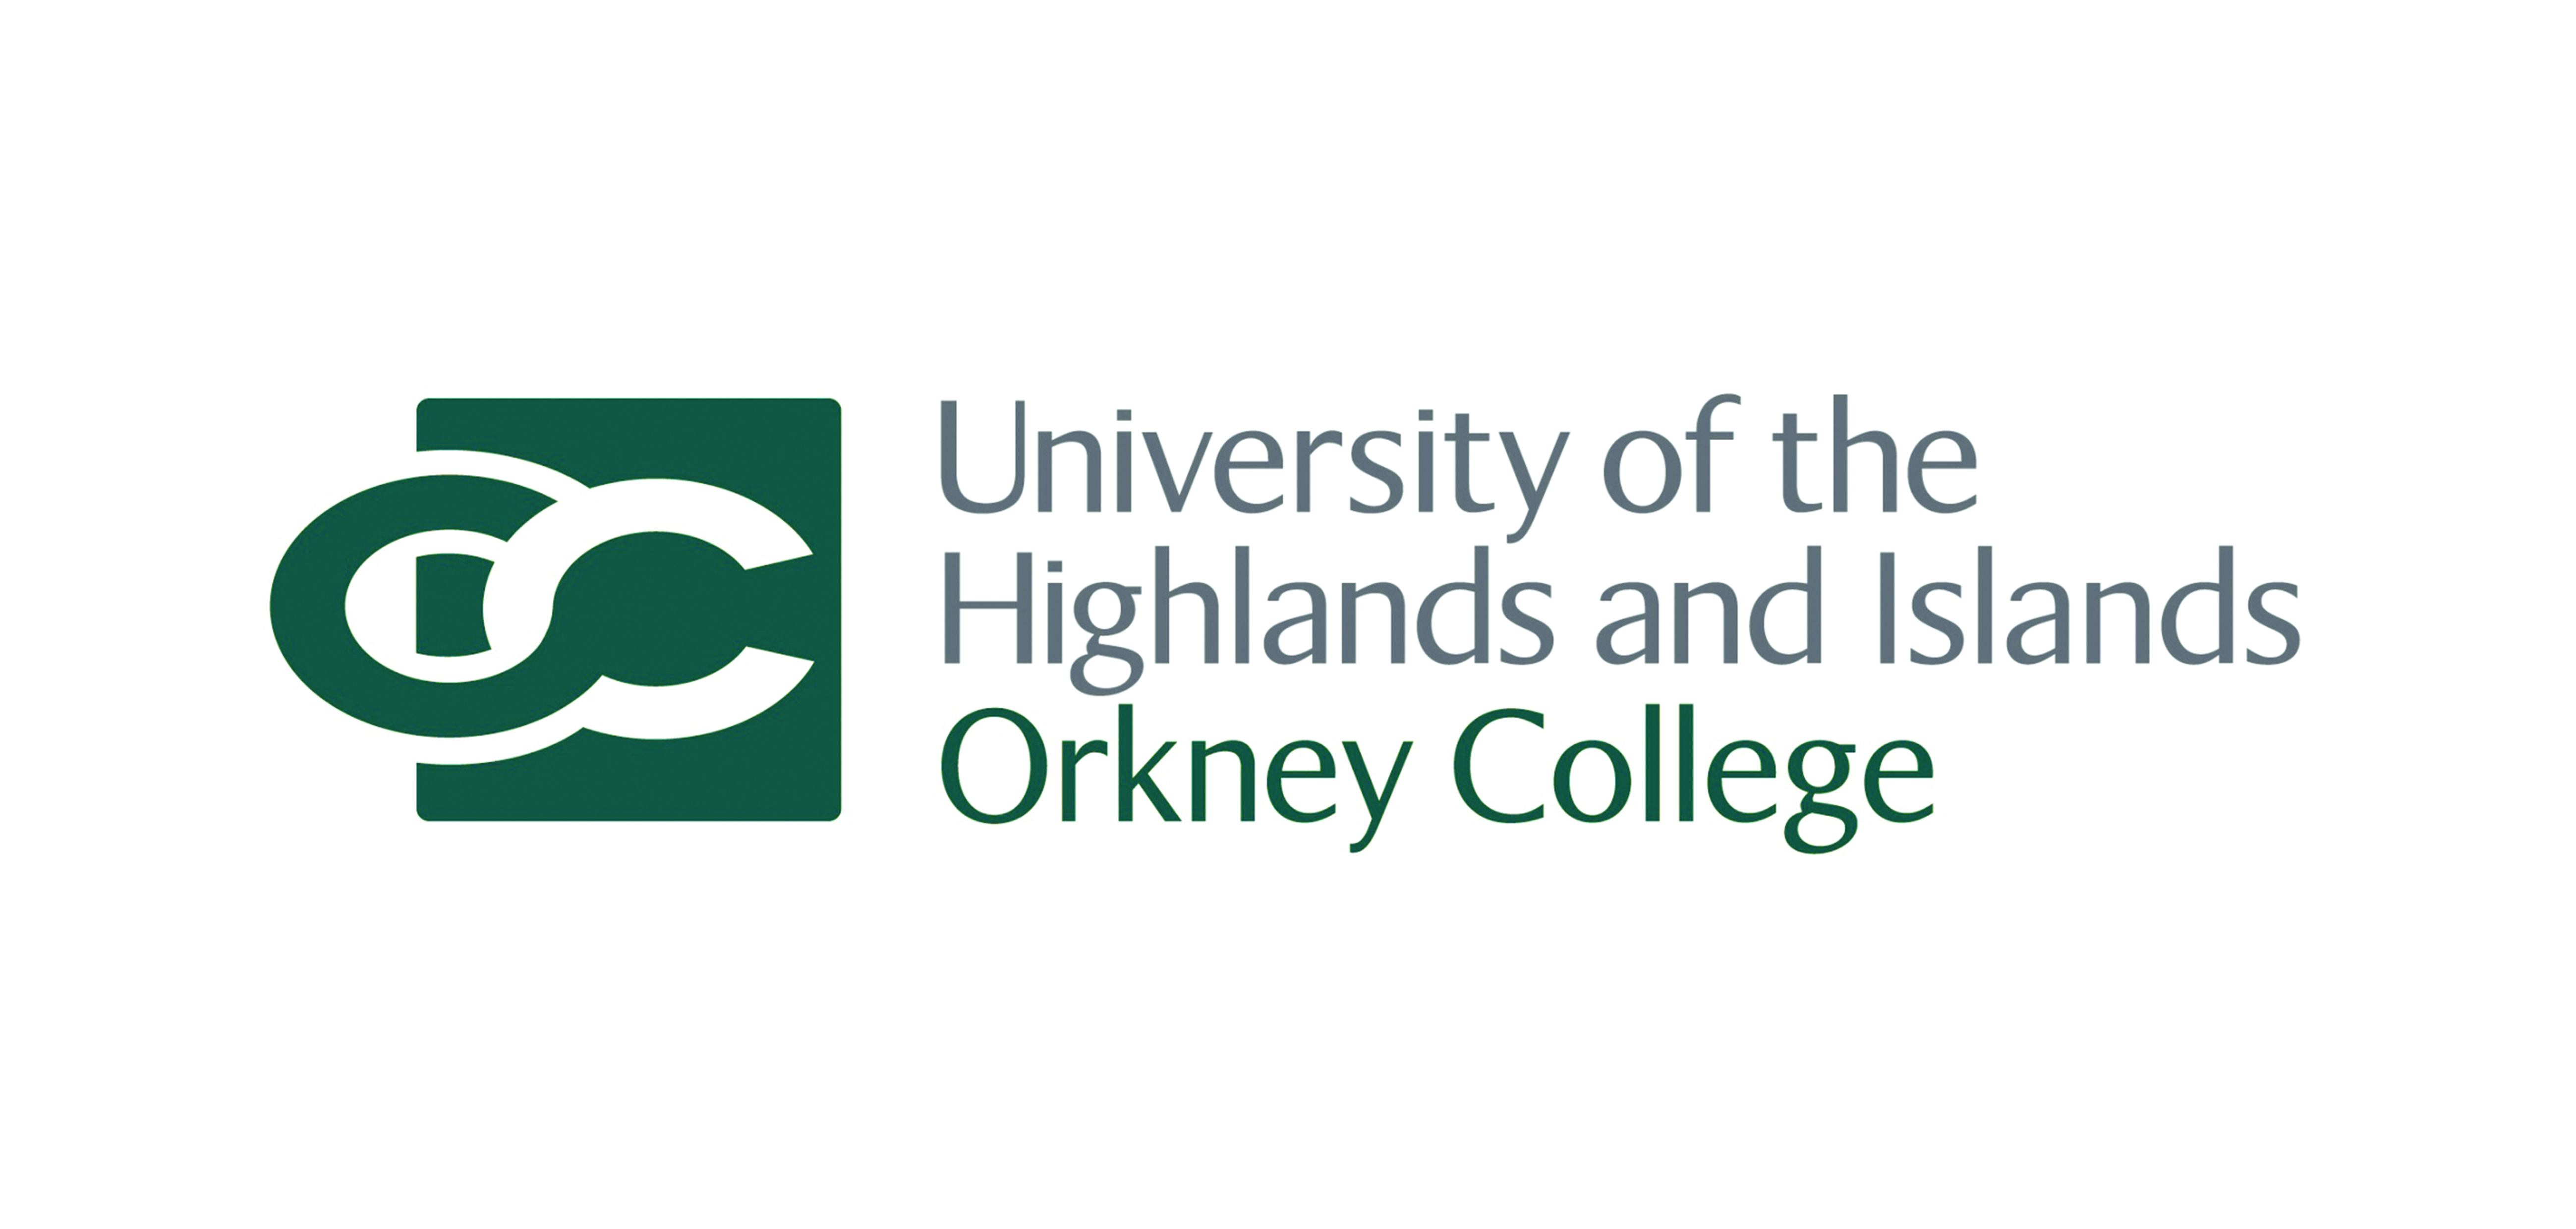 Visit Orkney College website